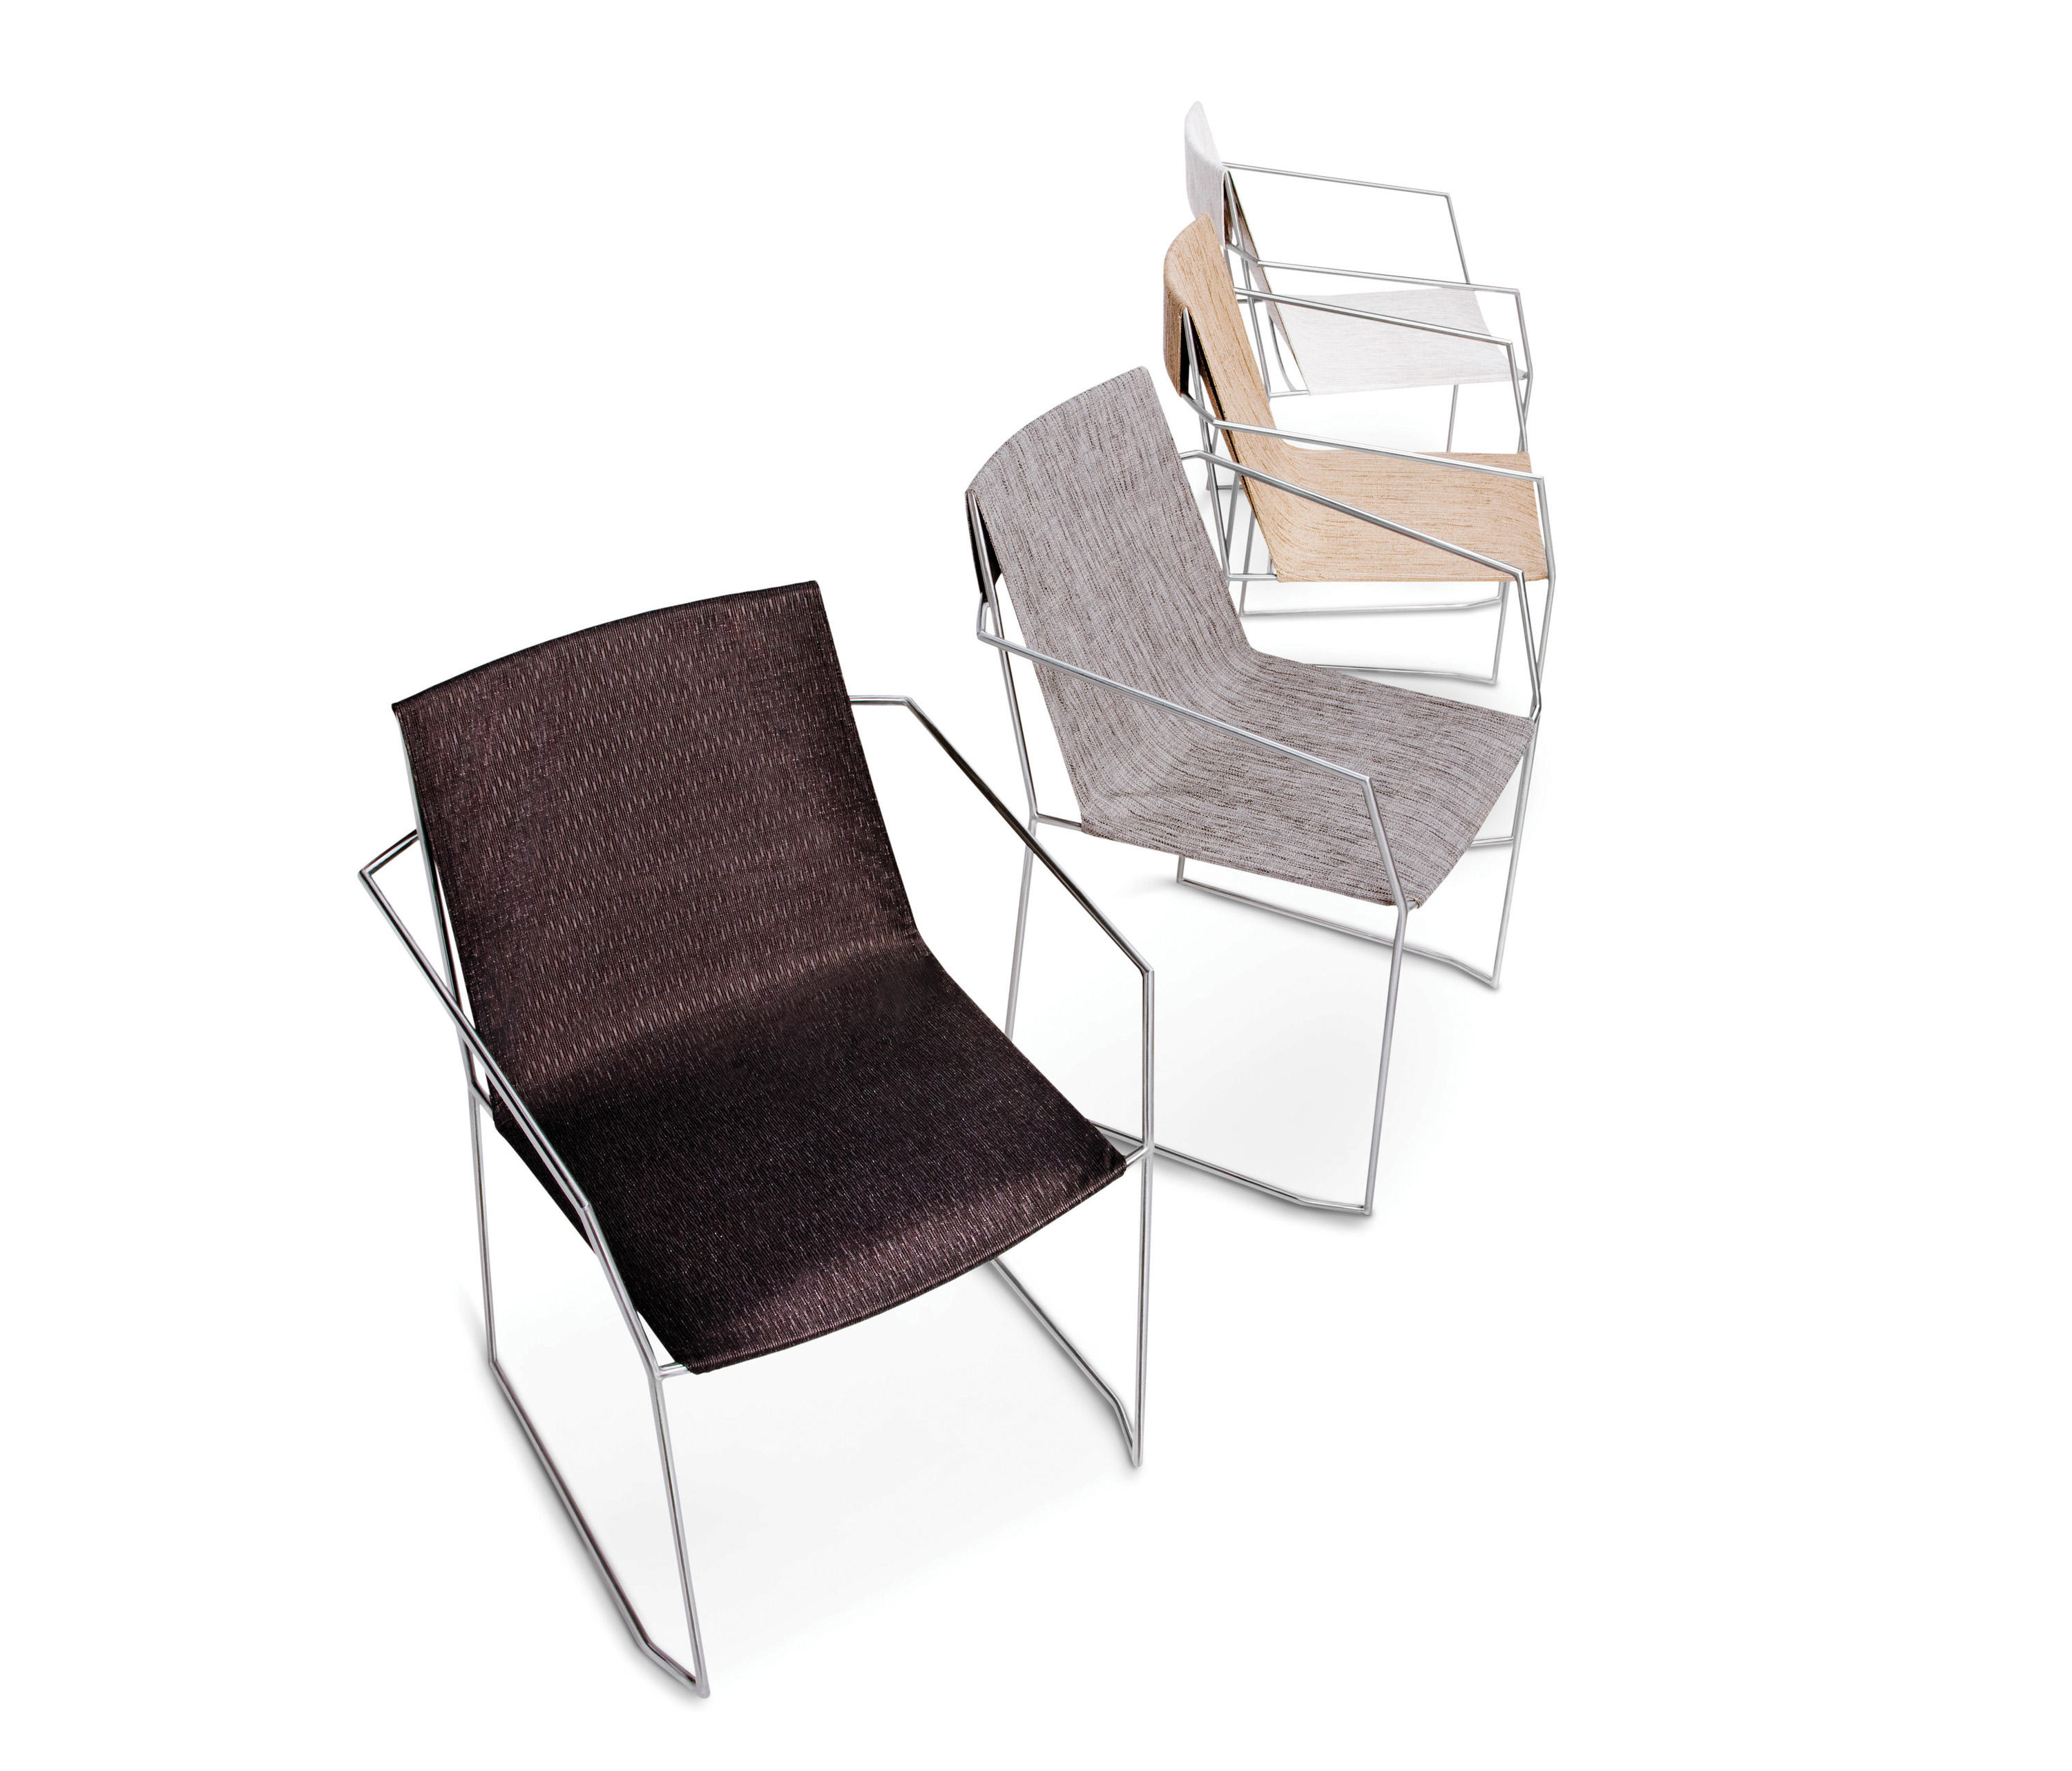 MORPHOSE LOUNGE CHAIR Sun loungers from Kenkoon